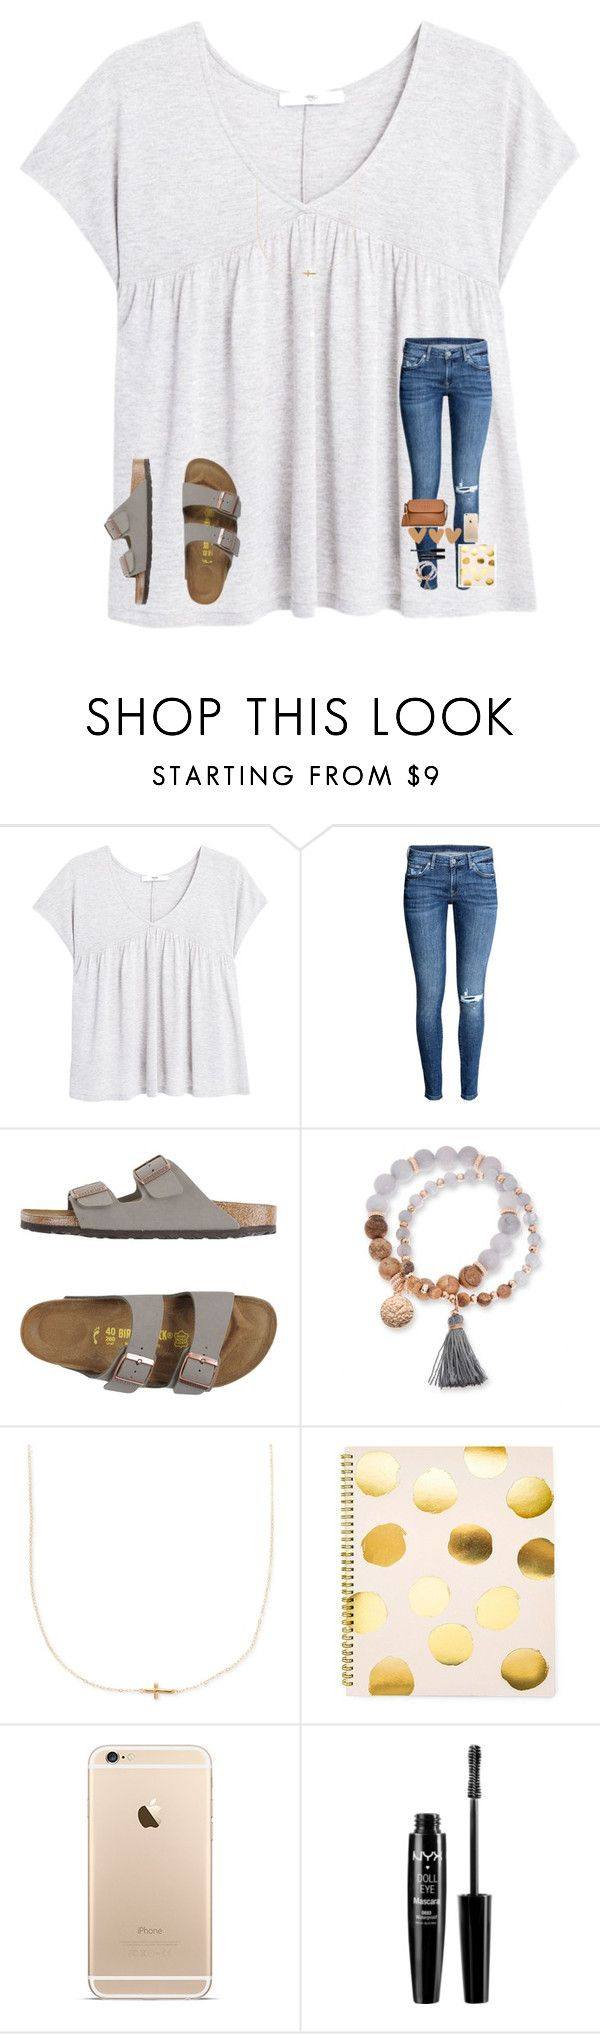 """I hate Mondays "" by mae343 ❤ liked on Polyvore featuring MANGO, Birkenstock, Kim Rogers, Sugar Paper, NYX and Tory Burch"